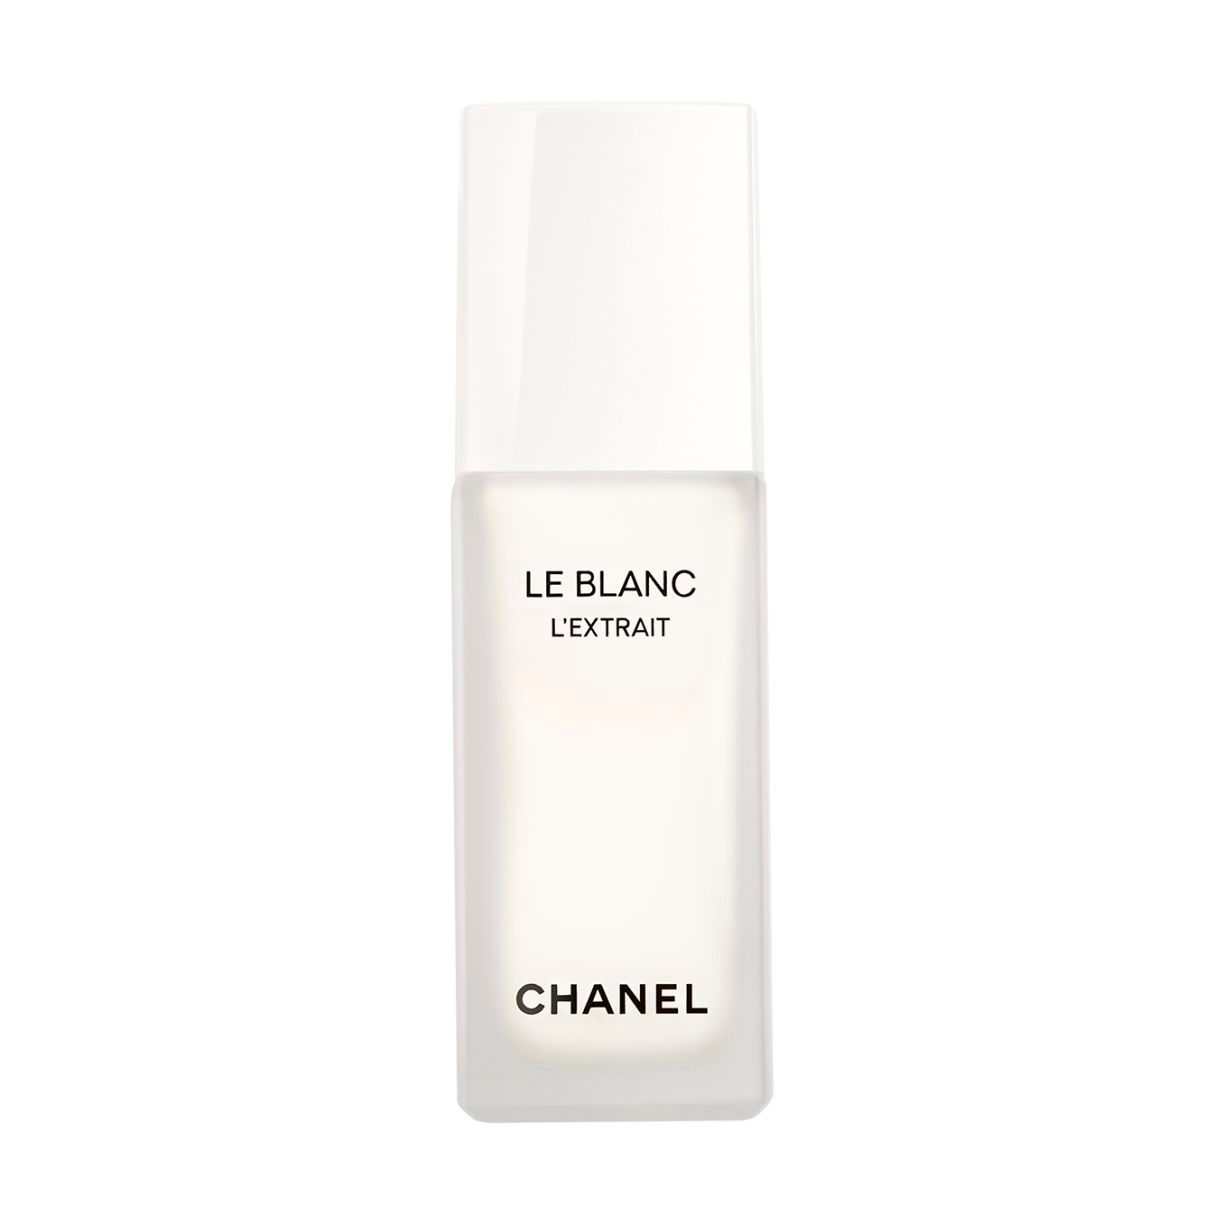 LE BLANC L'EXTRAIT - INTENSIVE YOUTH WHITENING TREATMENT 20ml